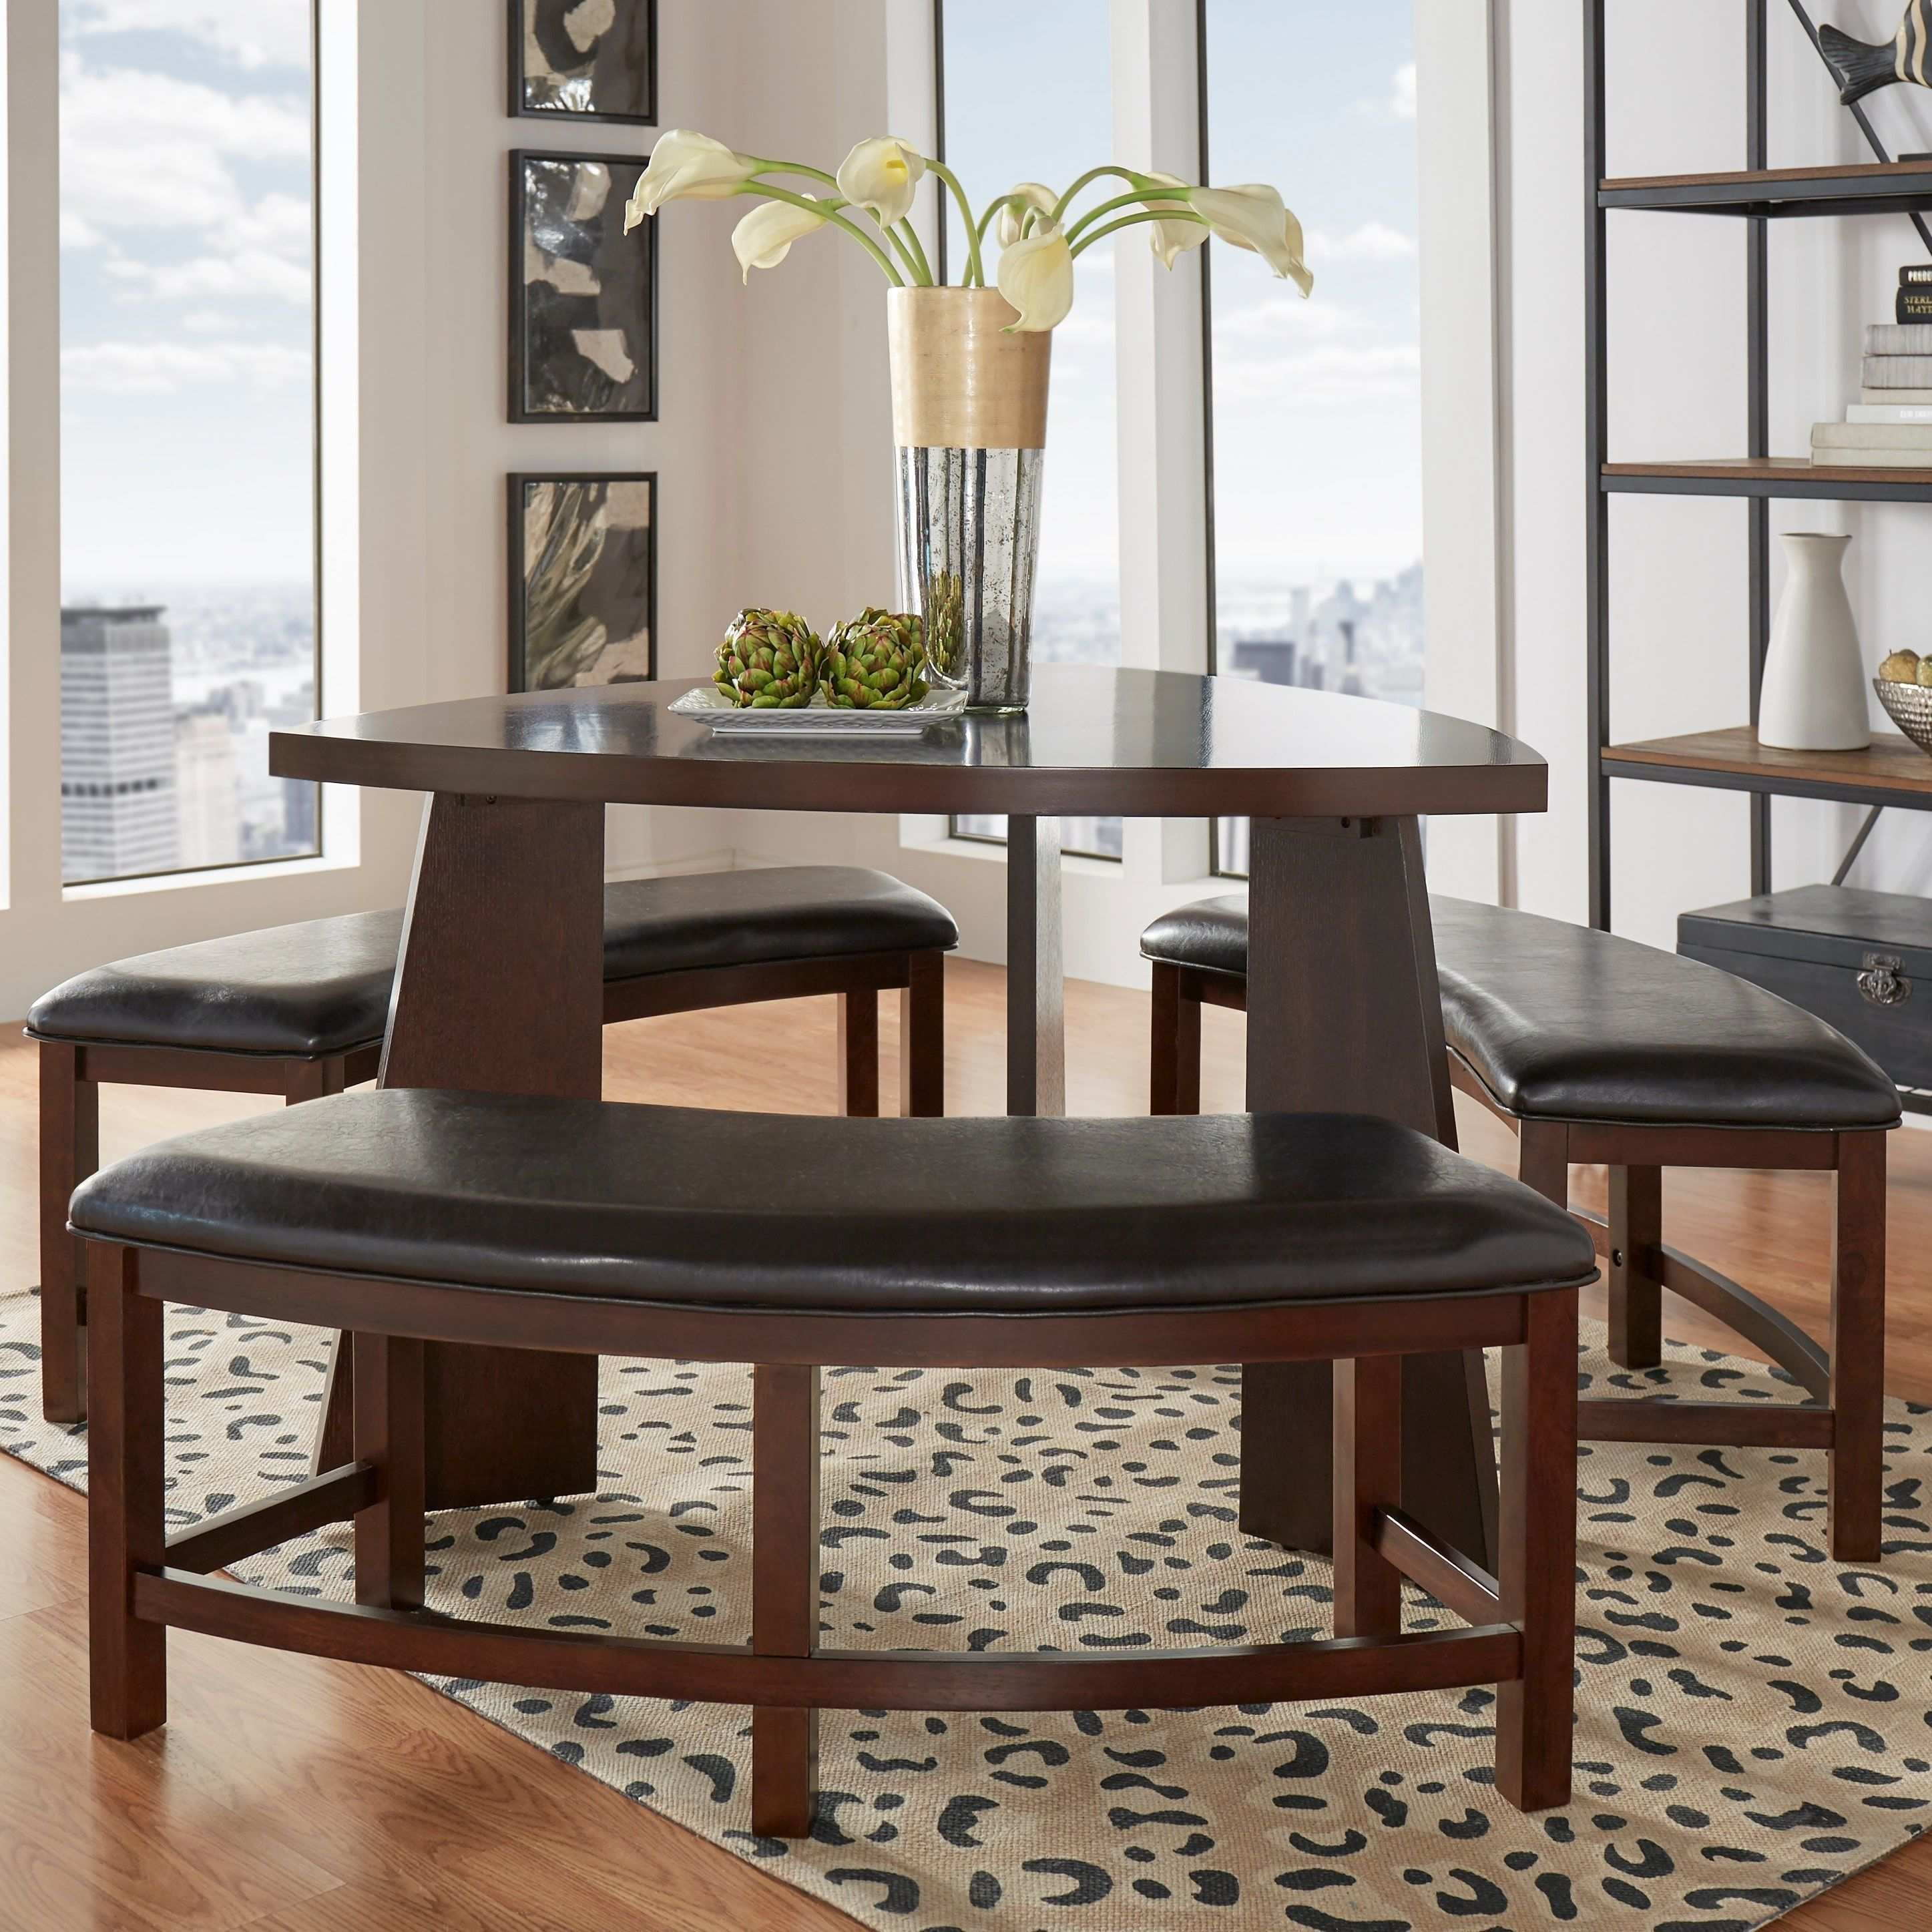 Paradise Merlot Triangle Shaped 4-piece Dining Set by Inspire Q